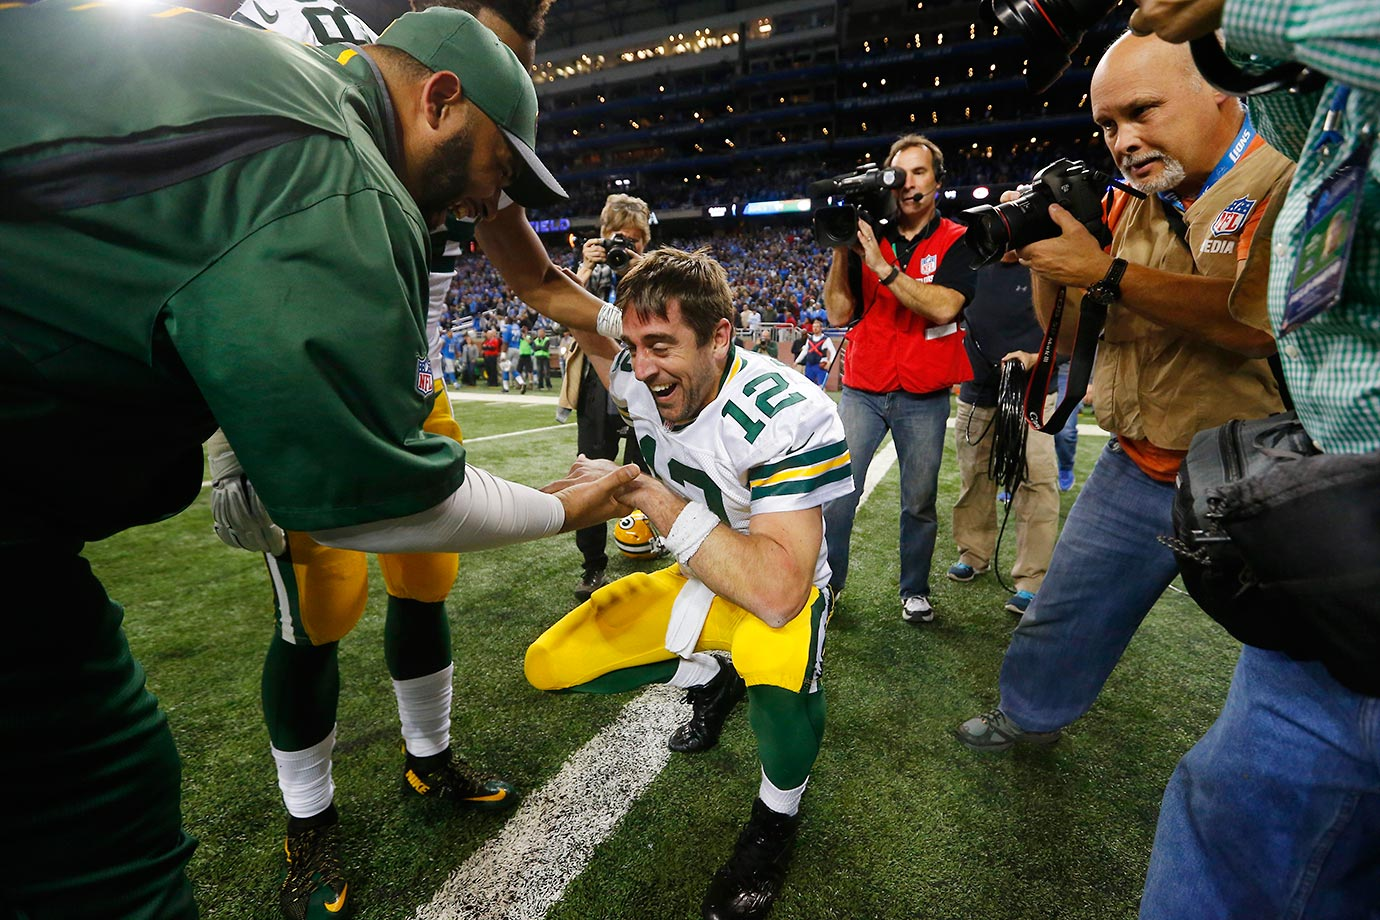 Aaron Rodgers of the Packers celebrates after throwing a 61-yard, Hail Mary touchdown pass.